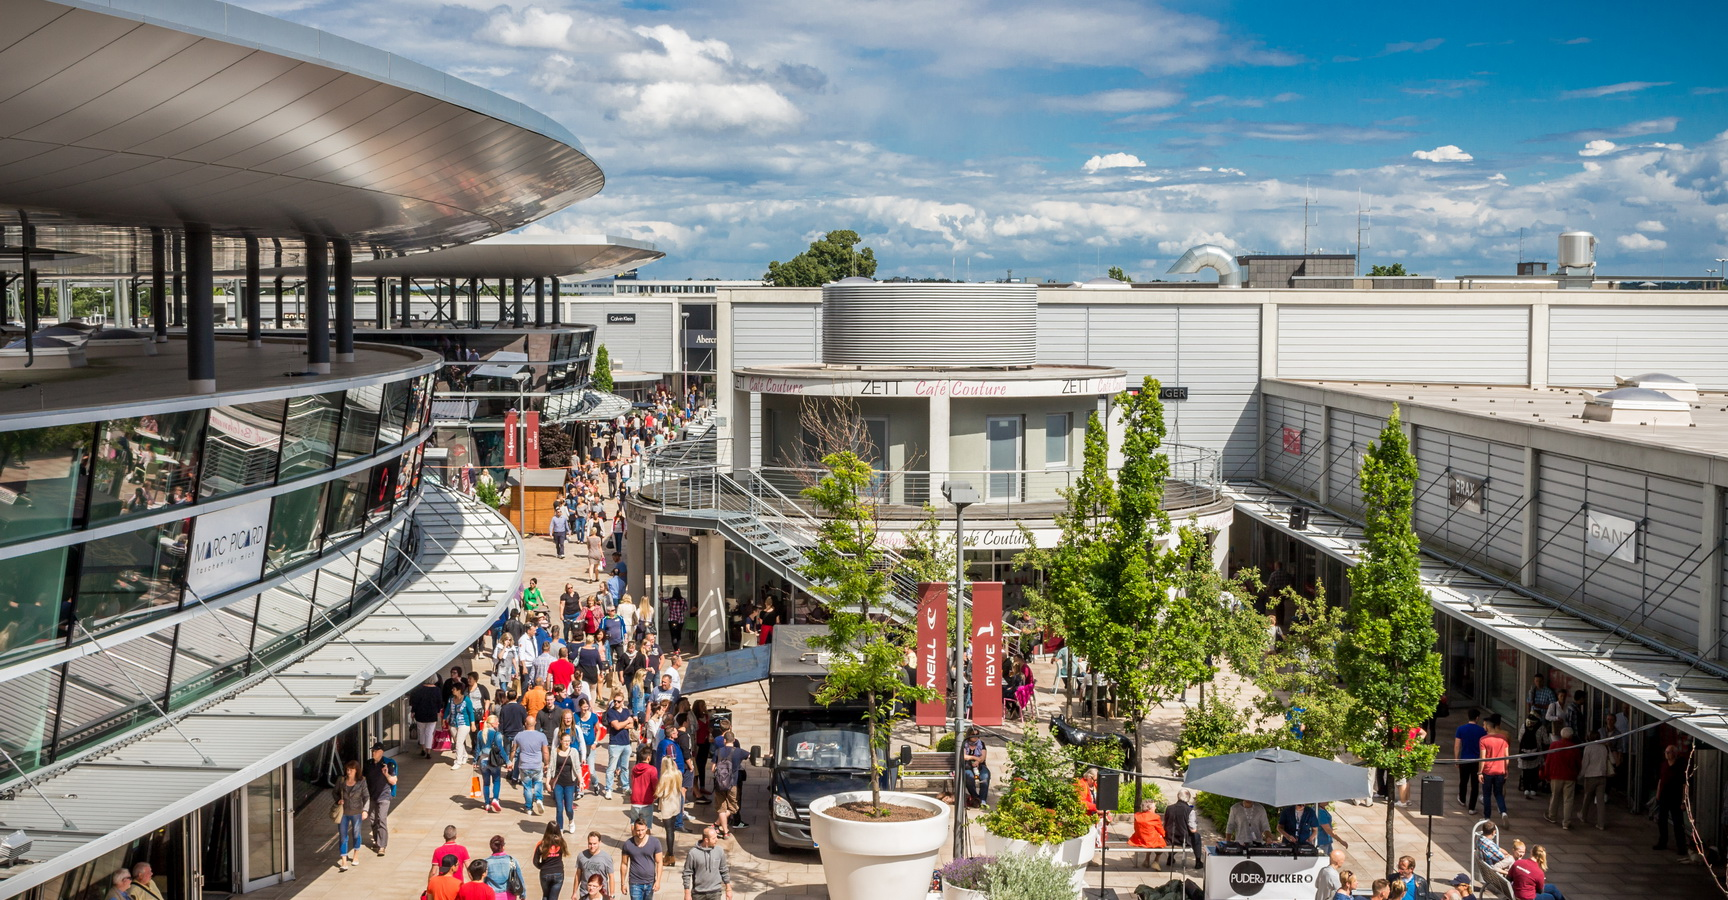 Designer Outlets Wolfsburg – Our Yields